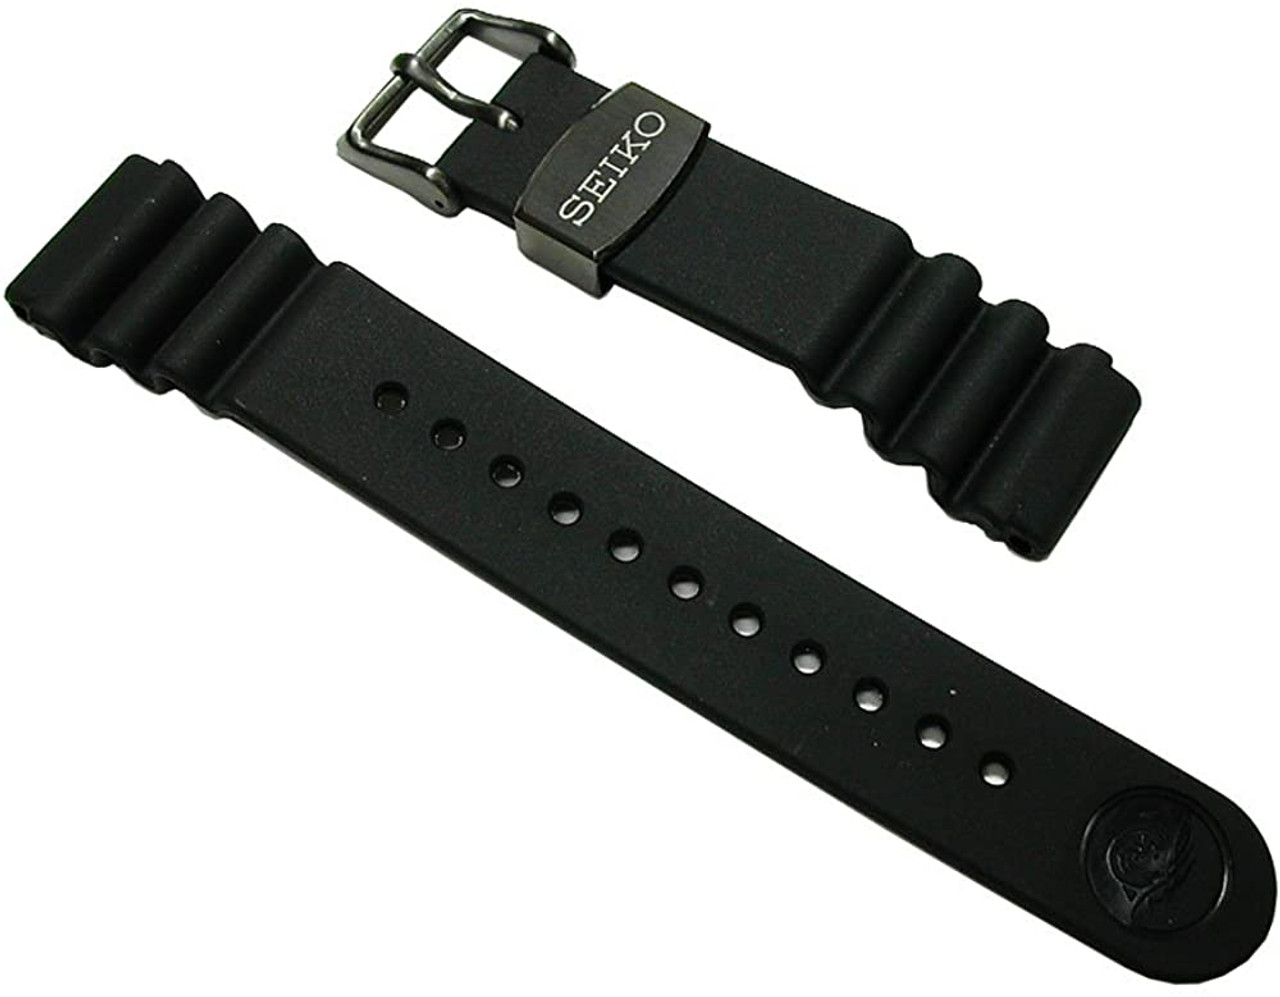 Seiko 22mm Rubber Strap DFL3EB for SBDX011 & SBBN013